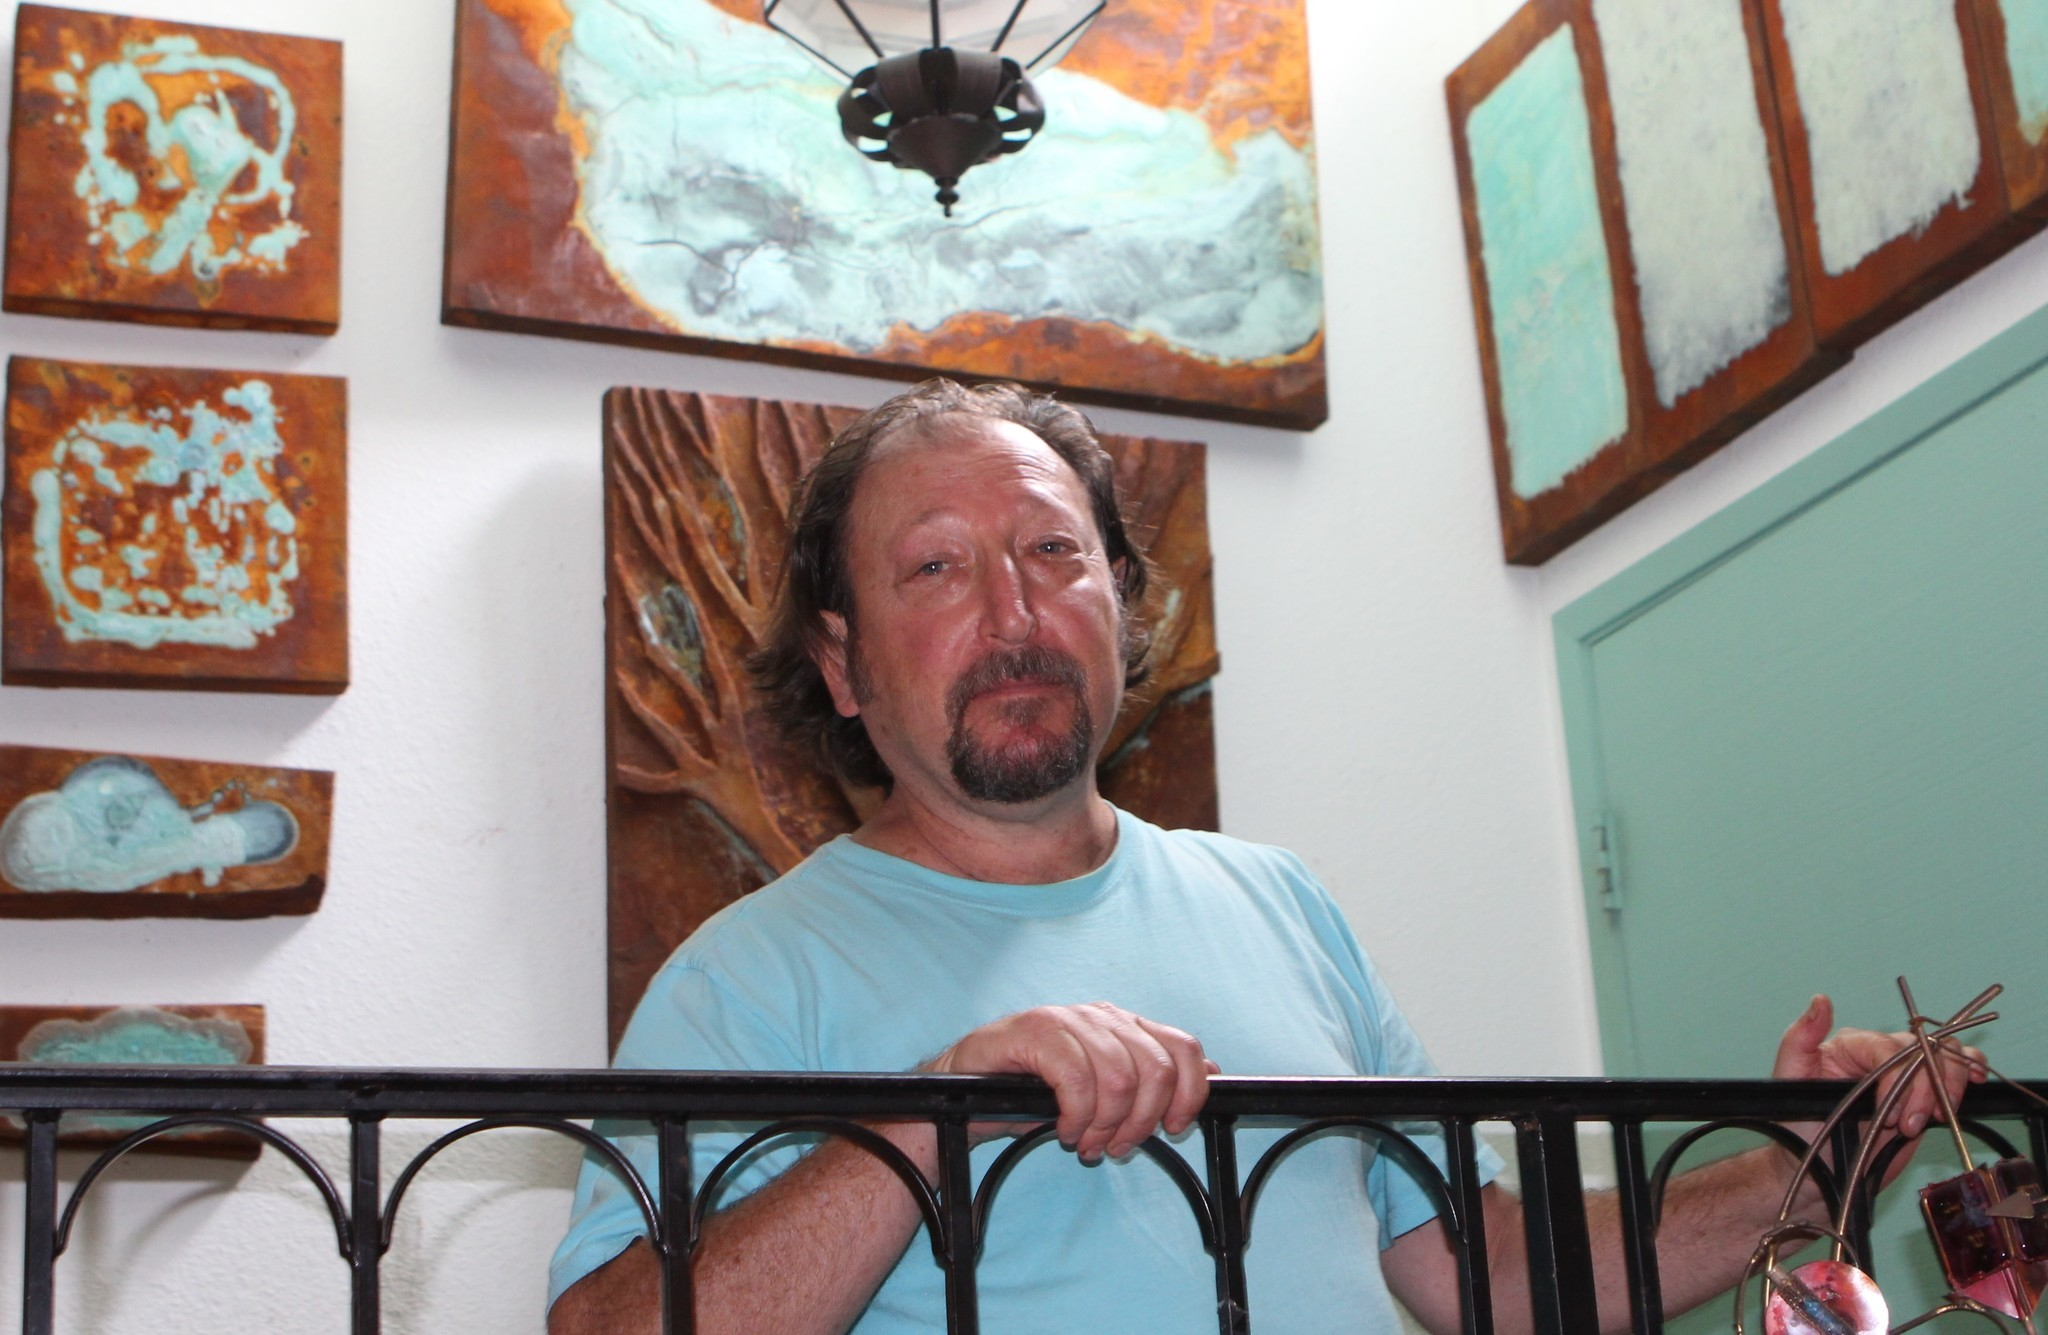 Ed Whitmore poses in his La Jolla condominium backdropped by his works of art.